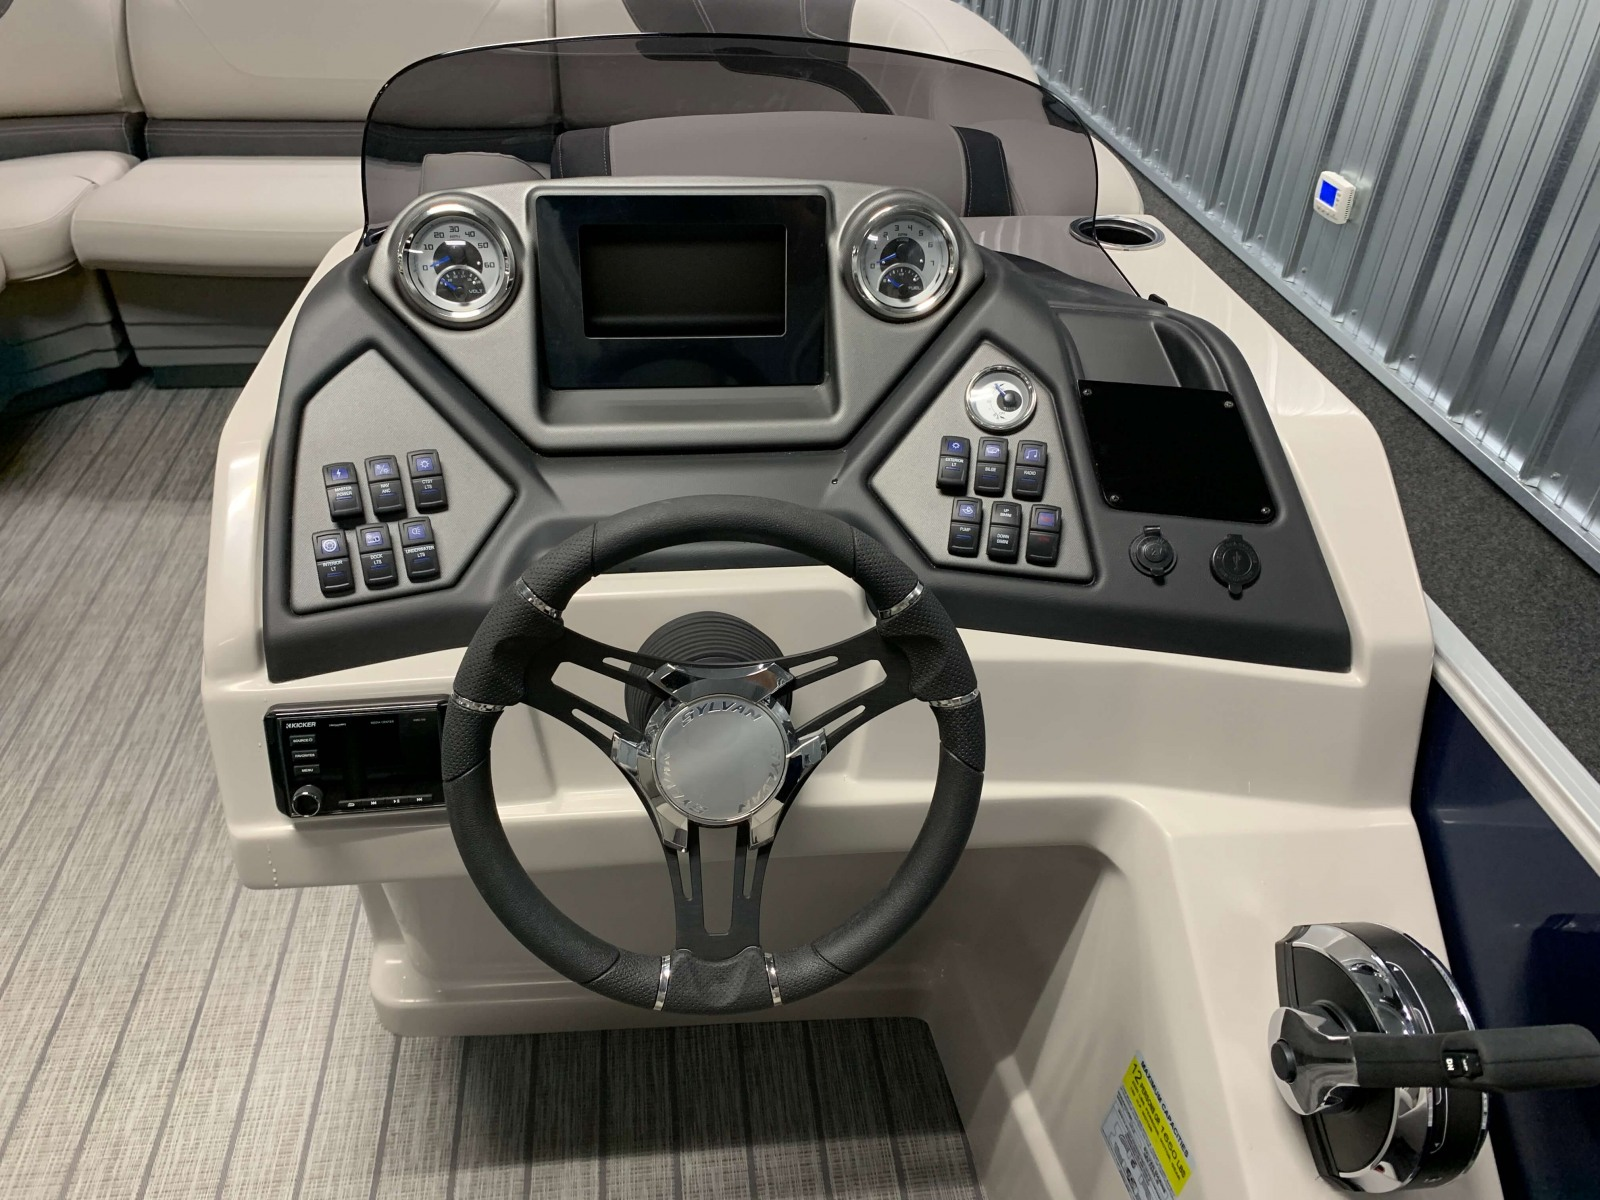 Drivers Console of the 2022 Sylvan L3 LZ Pontoon Boat